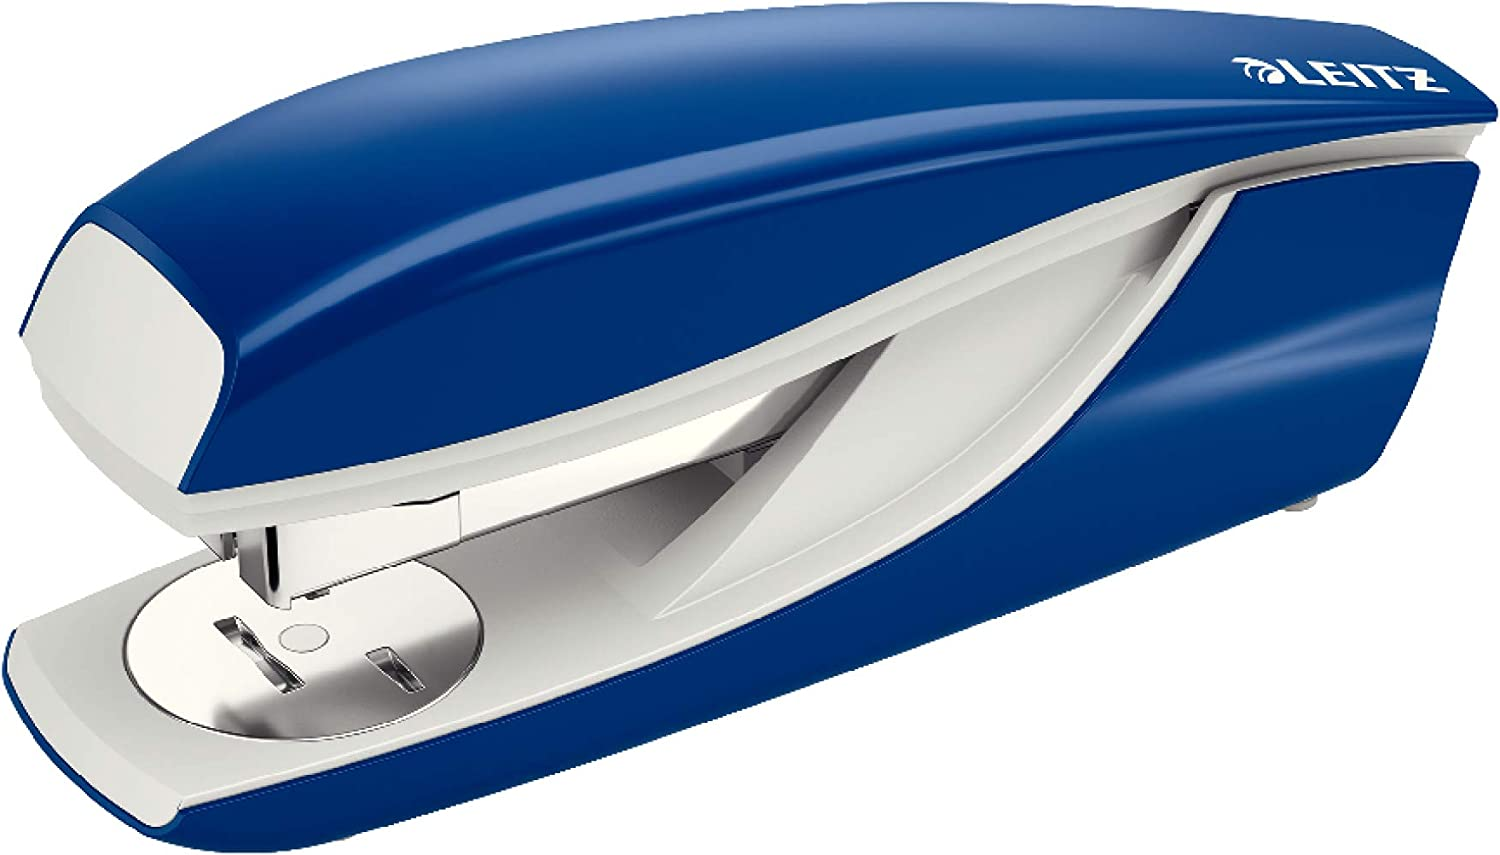 Leitz Next 5522 Stapler 40 Sheet Capacity for 24/6, 24/8 and 26/6 Staples - Blue